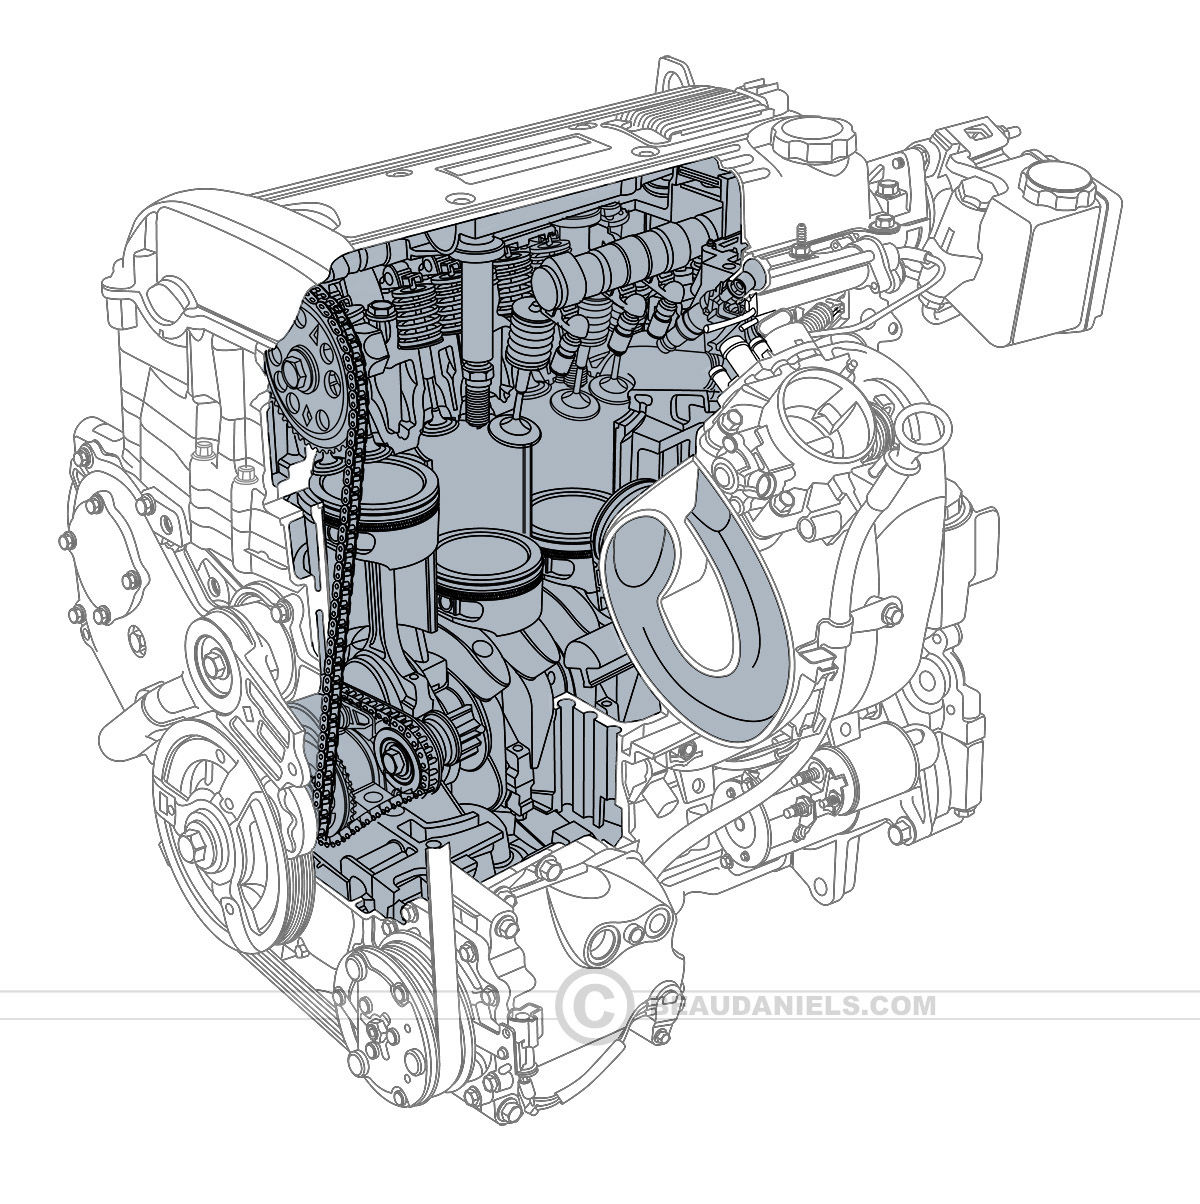 Generic Car Engines Portfolio 1 On Behance Toyota Motor Diagram